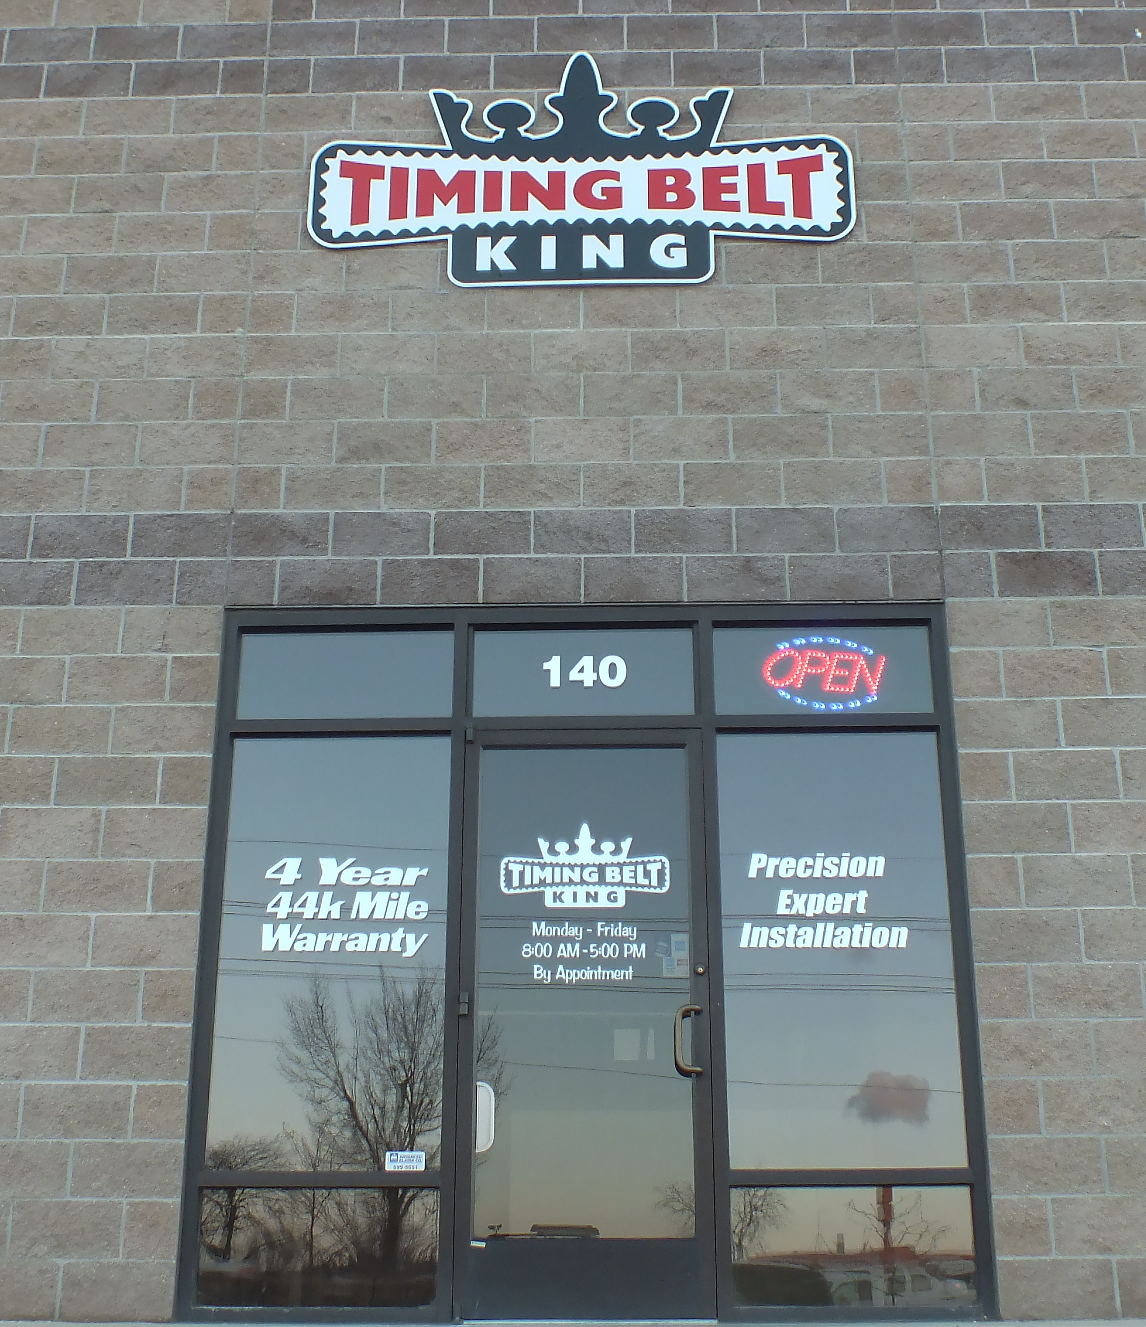 Timing Belt Replacement Colorado Springs - Timing Belt King